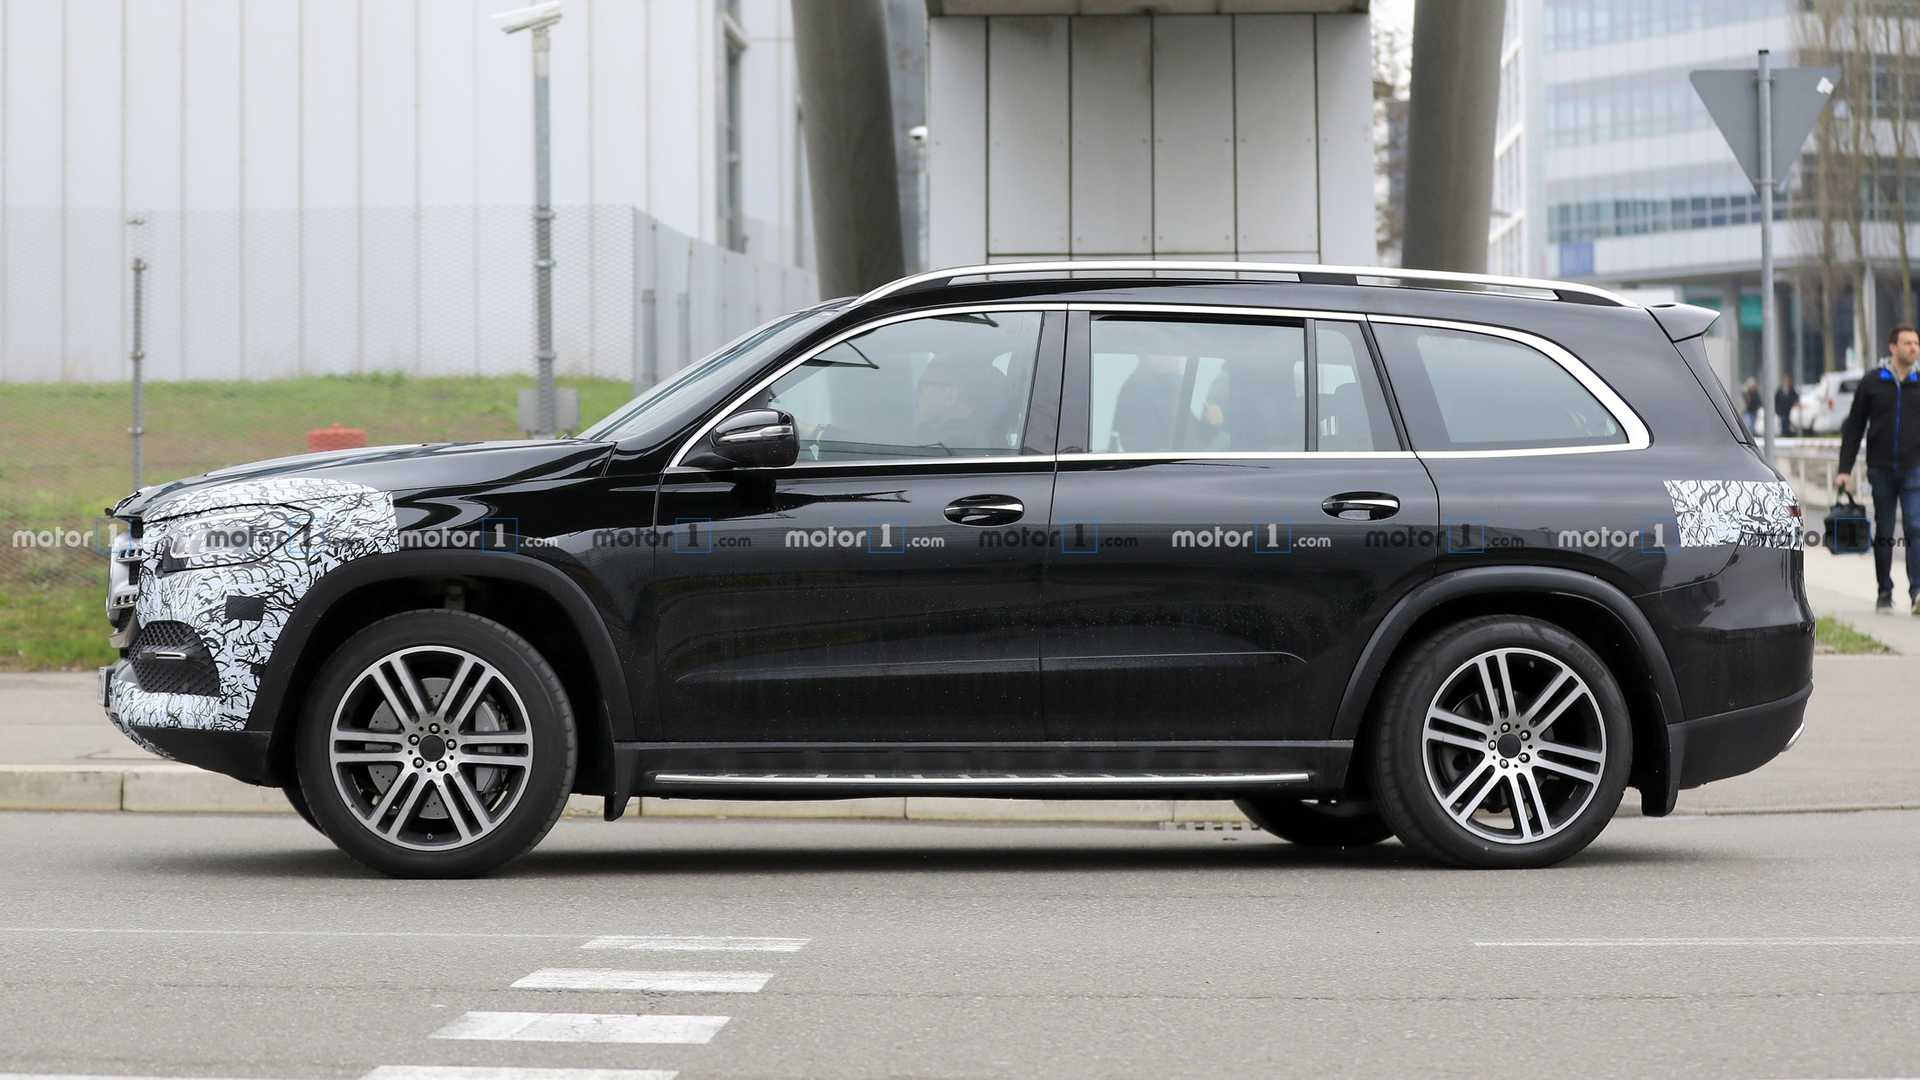 2018 - [Mercedes] GLS II - Page 4 2020-mercedes-benz-gls-class-spy-photo